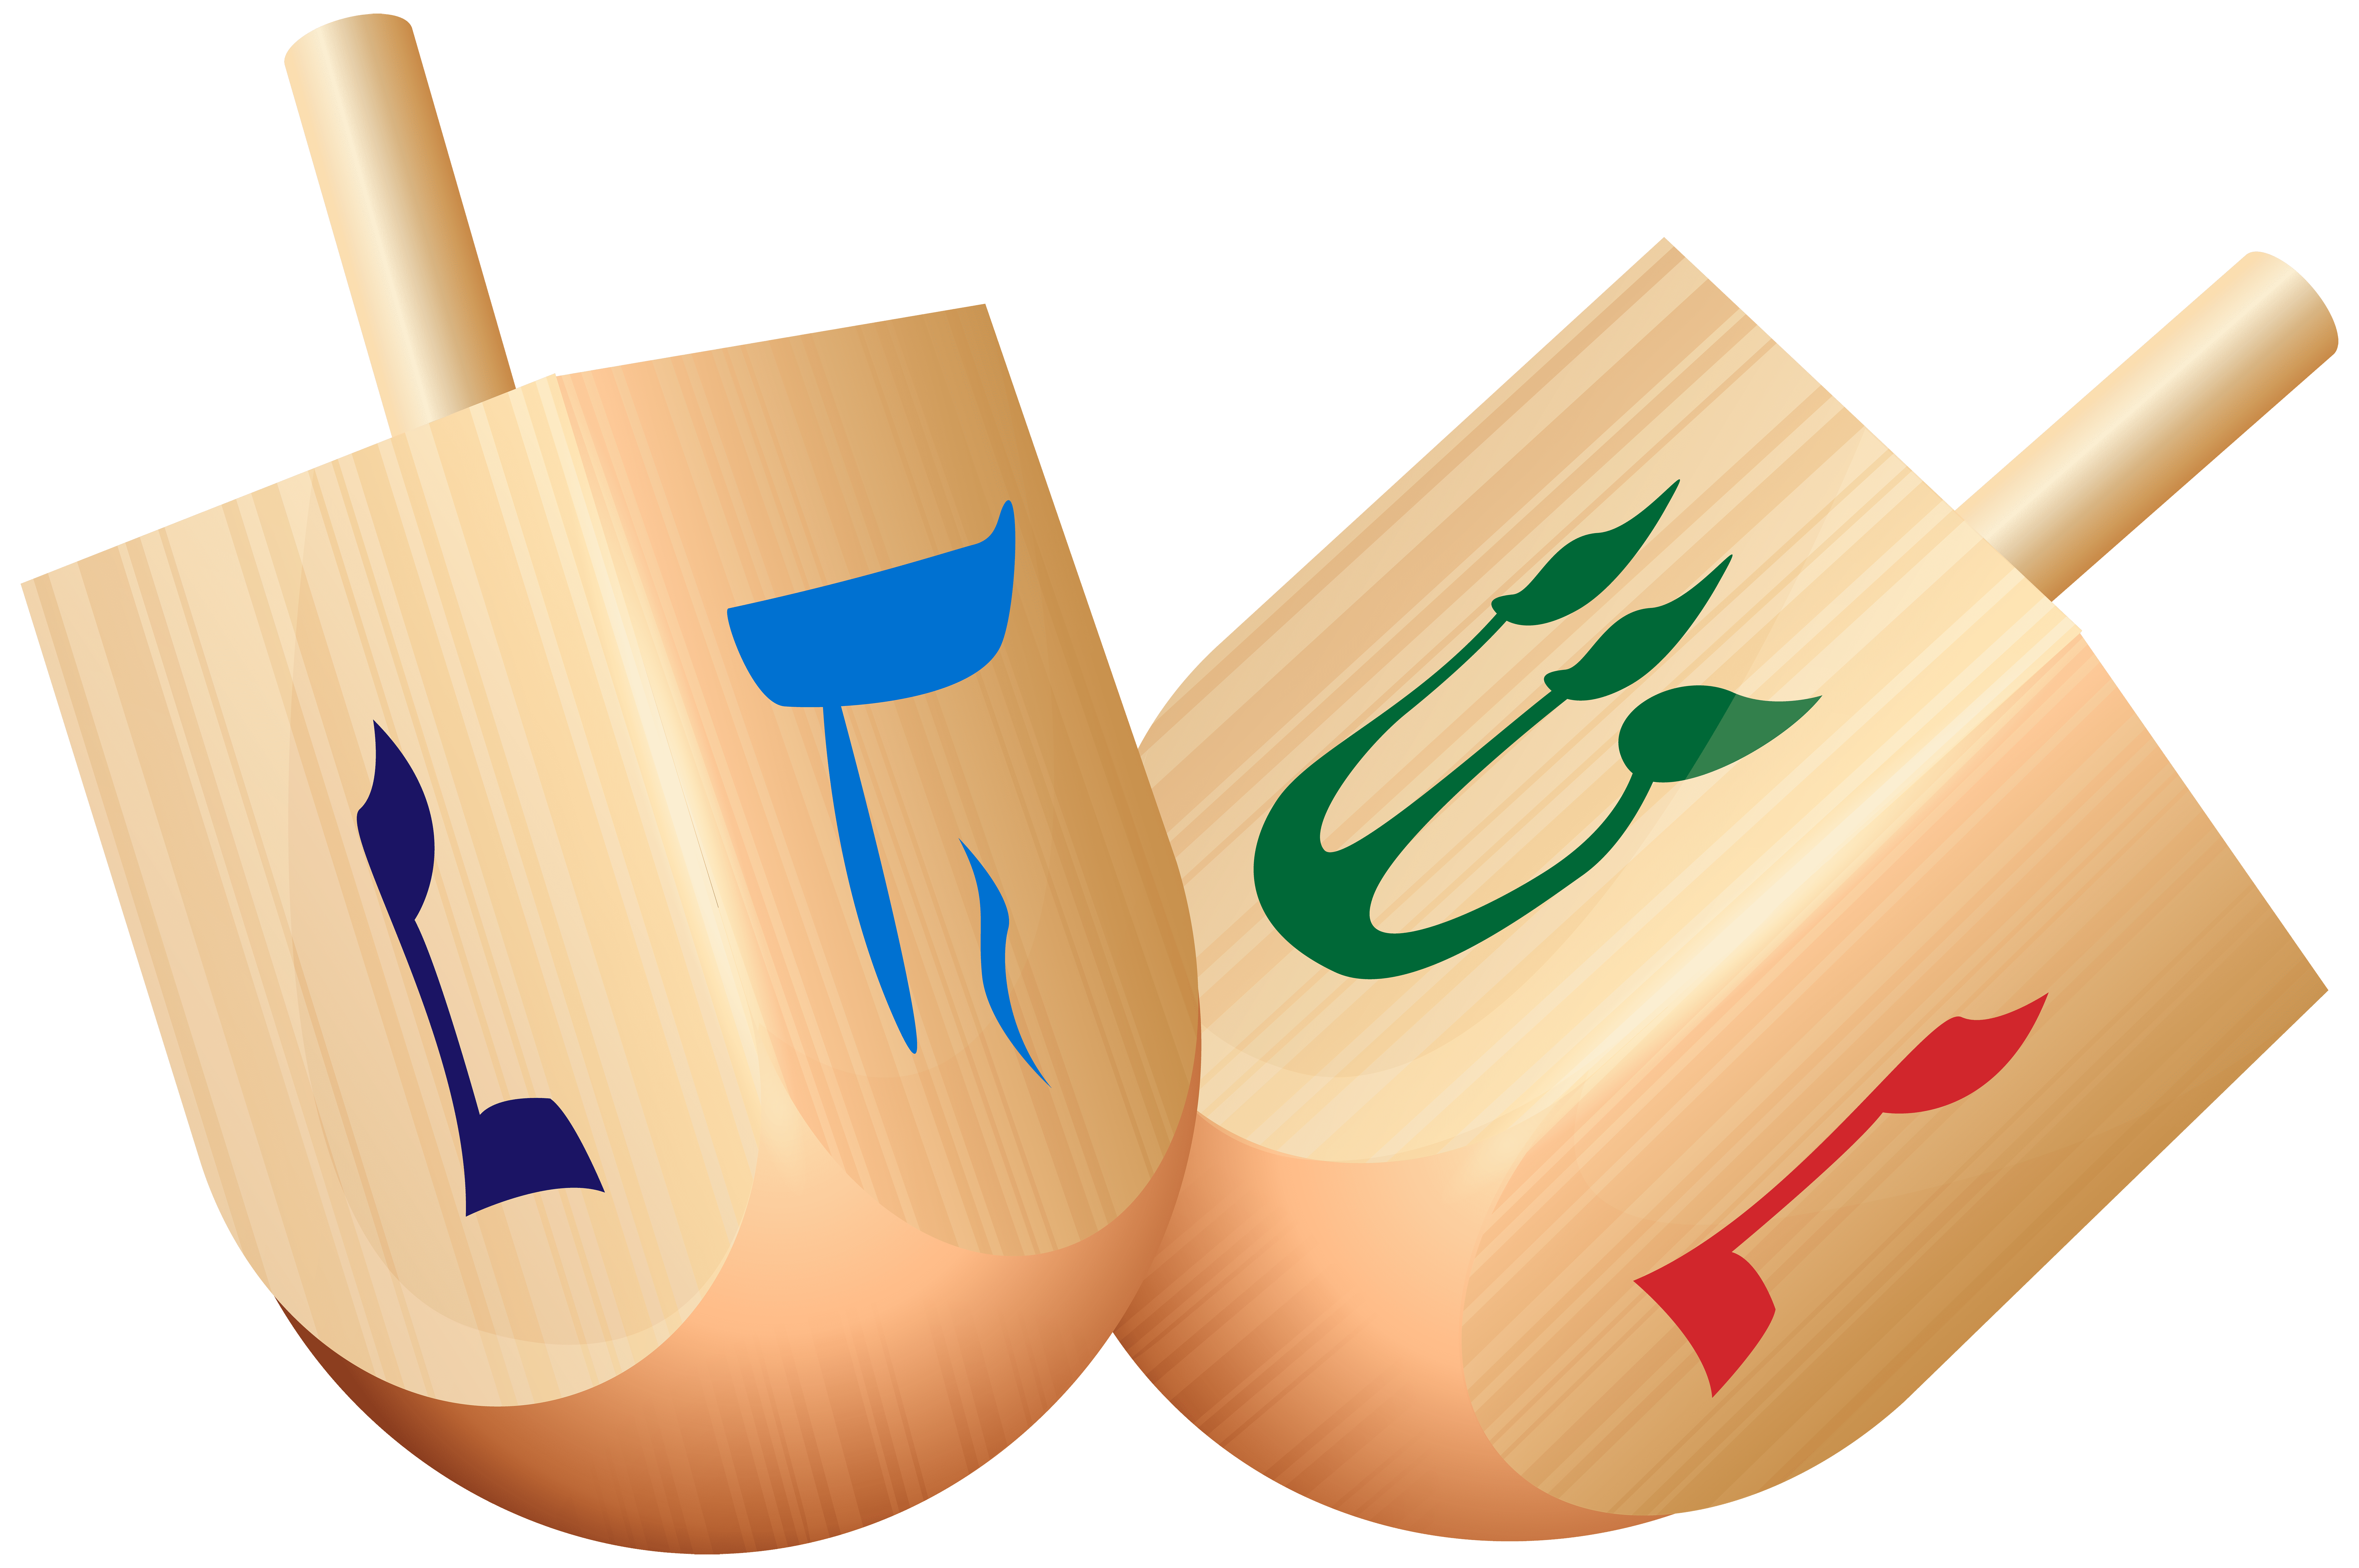 Wooden png free images. Dreidel clipart blank